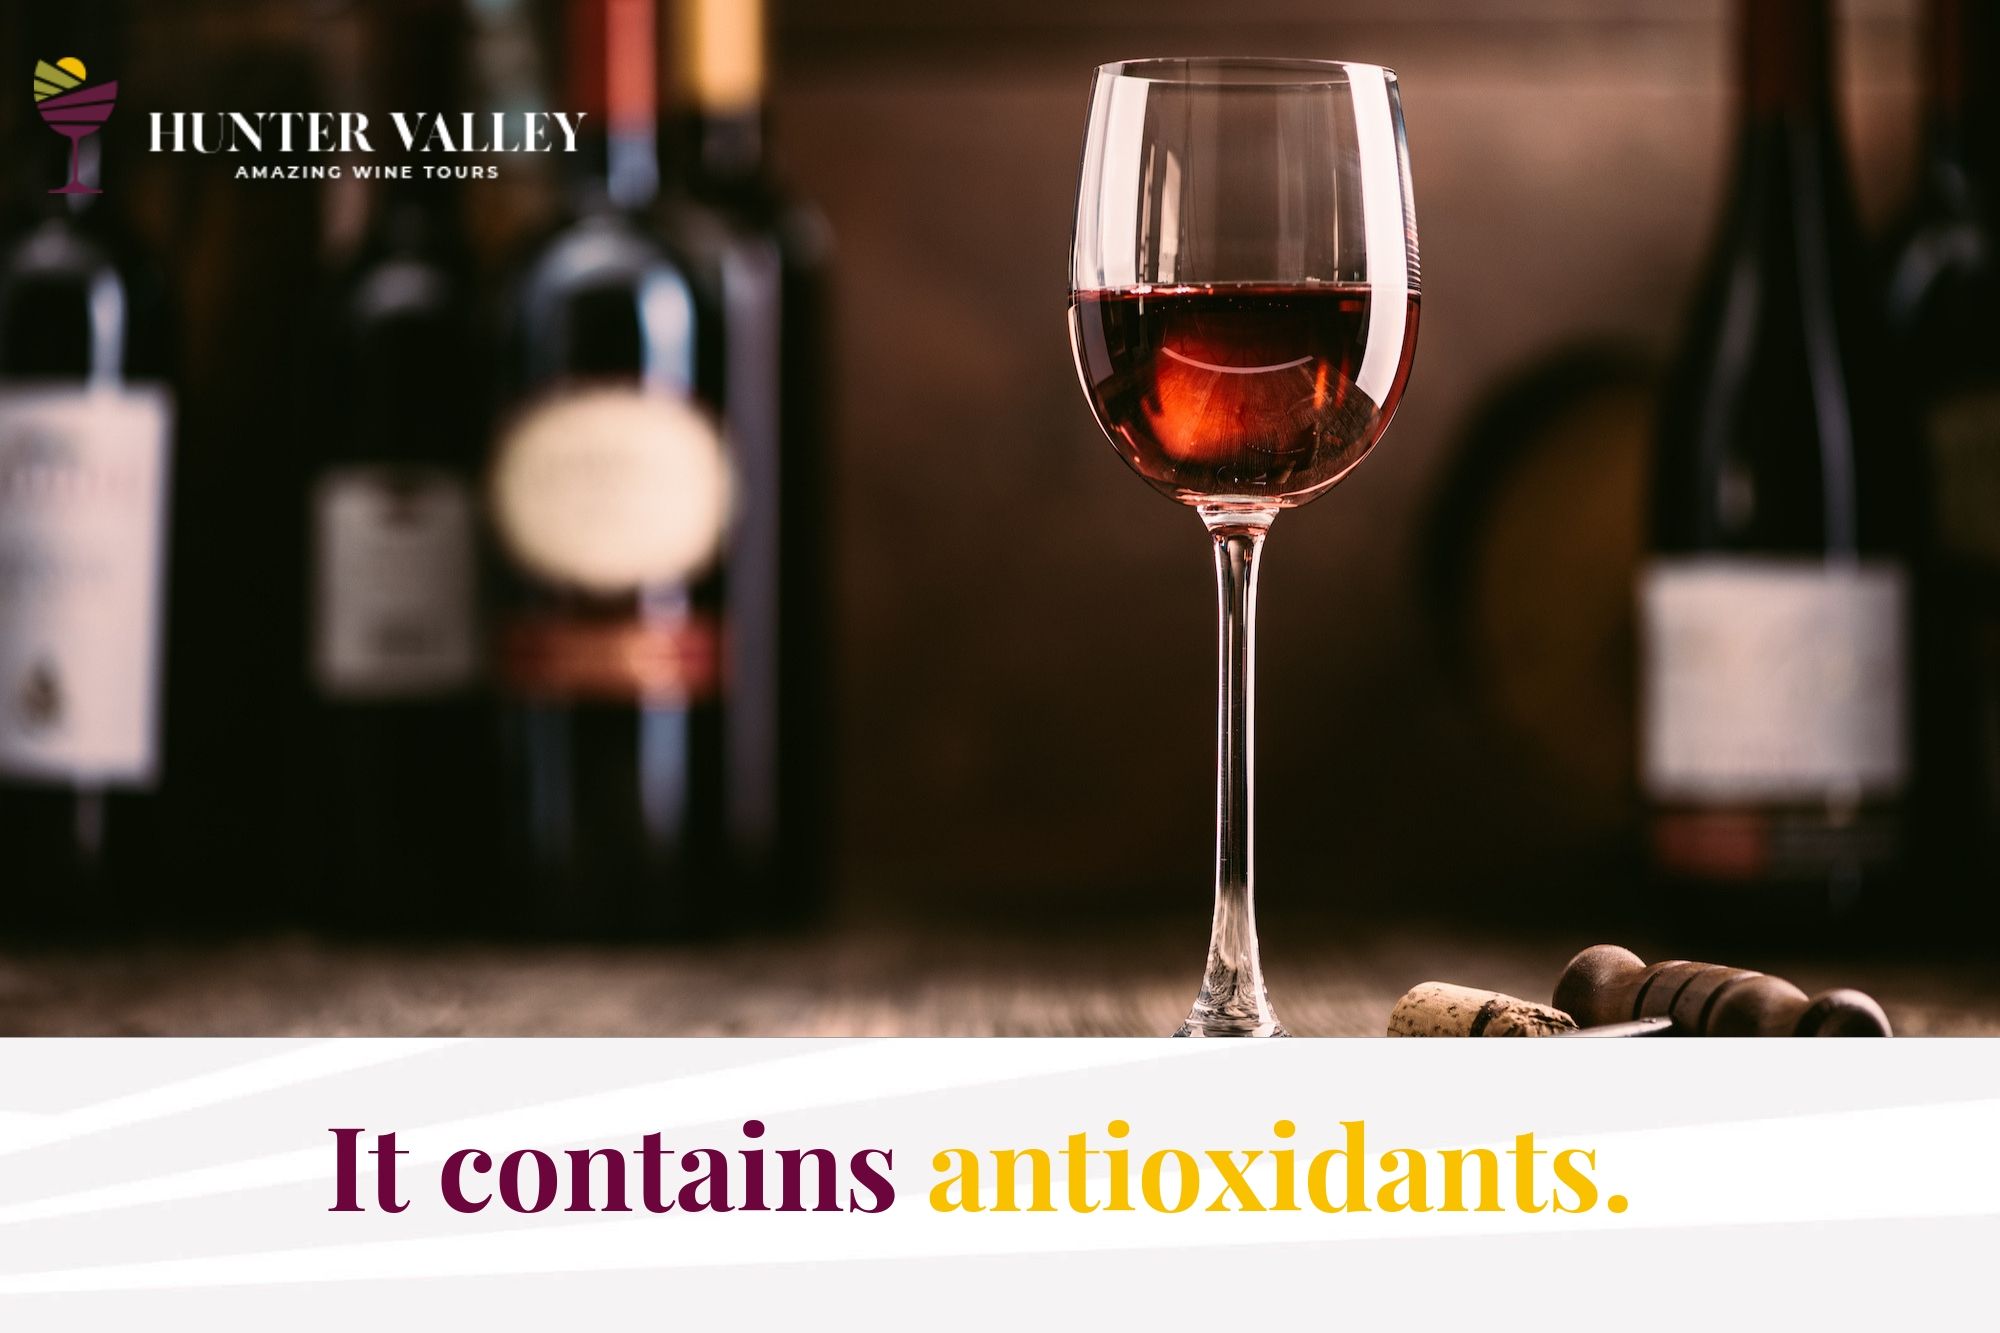 contains antioxidants